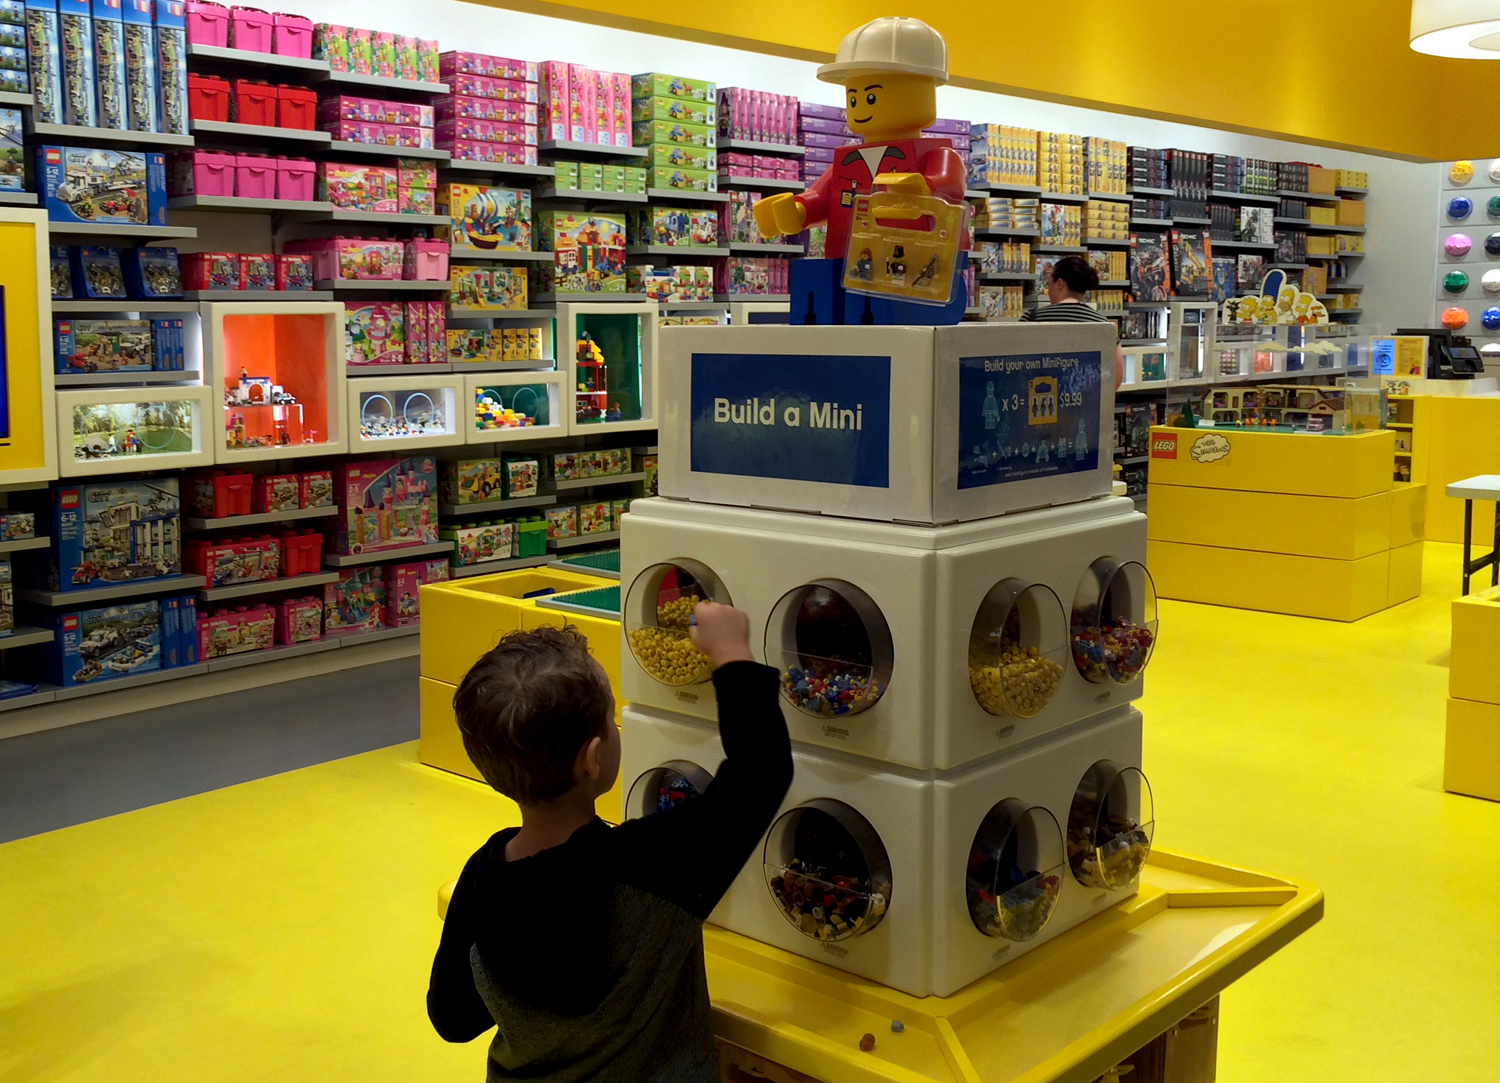 Lego Store opens at Fashion Show Mall Las Vegas | Las Vegas Blogs